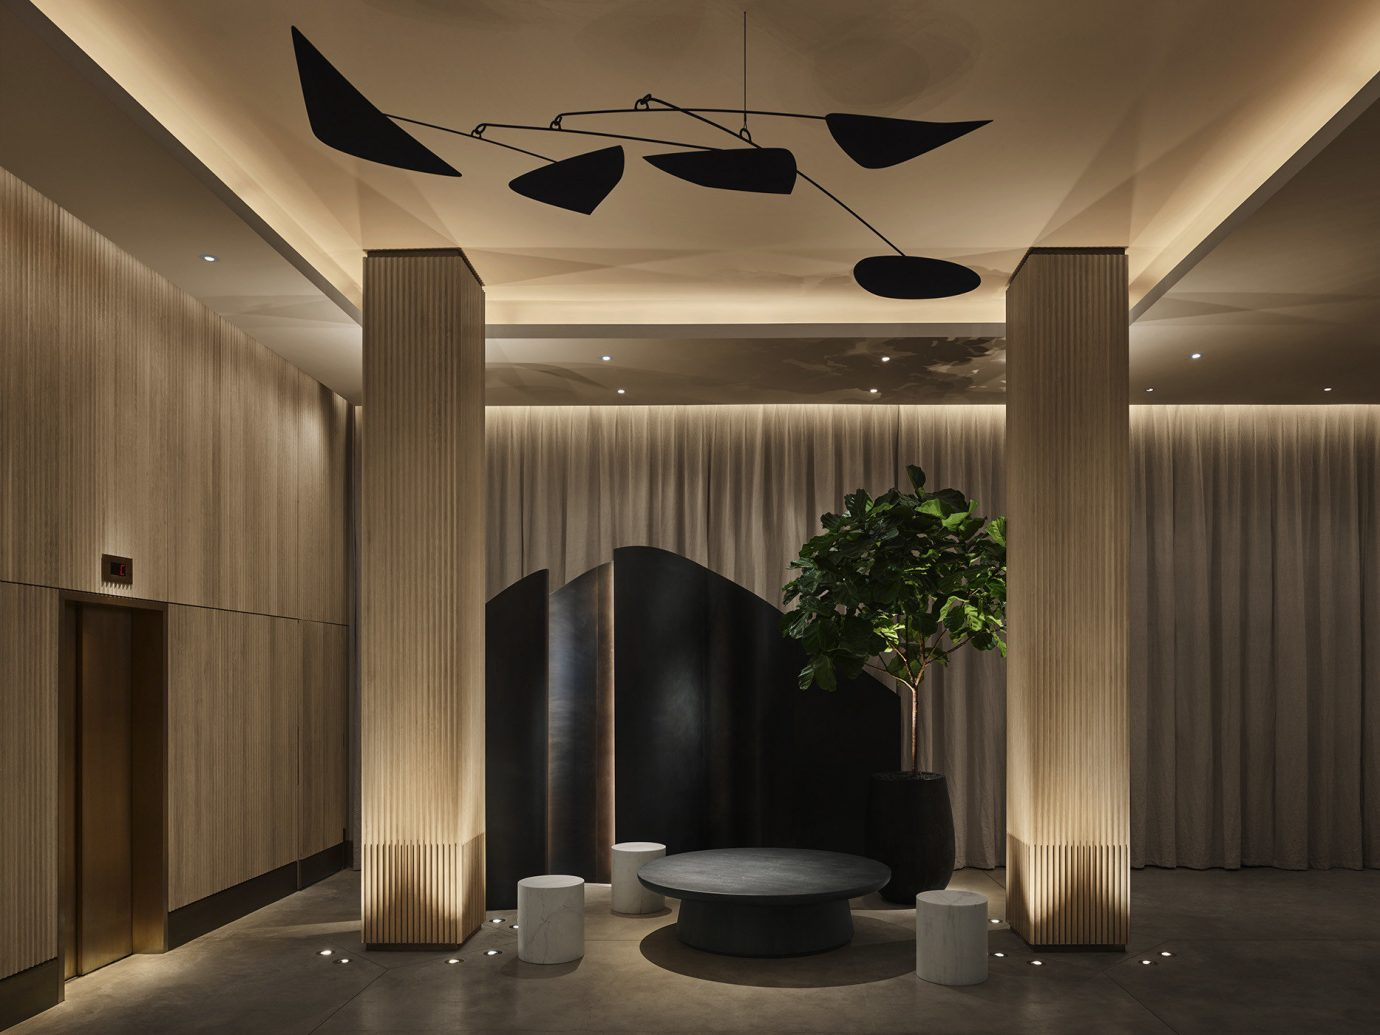 Hotels indoor wall ceiling room Lobby light Architecture interior design lighting Design hall window covering furniture Modern